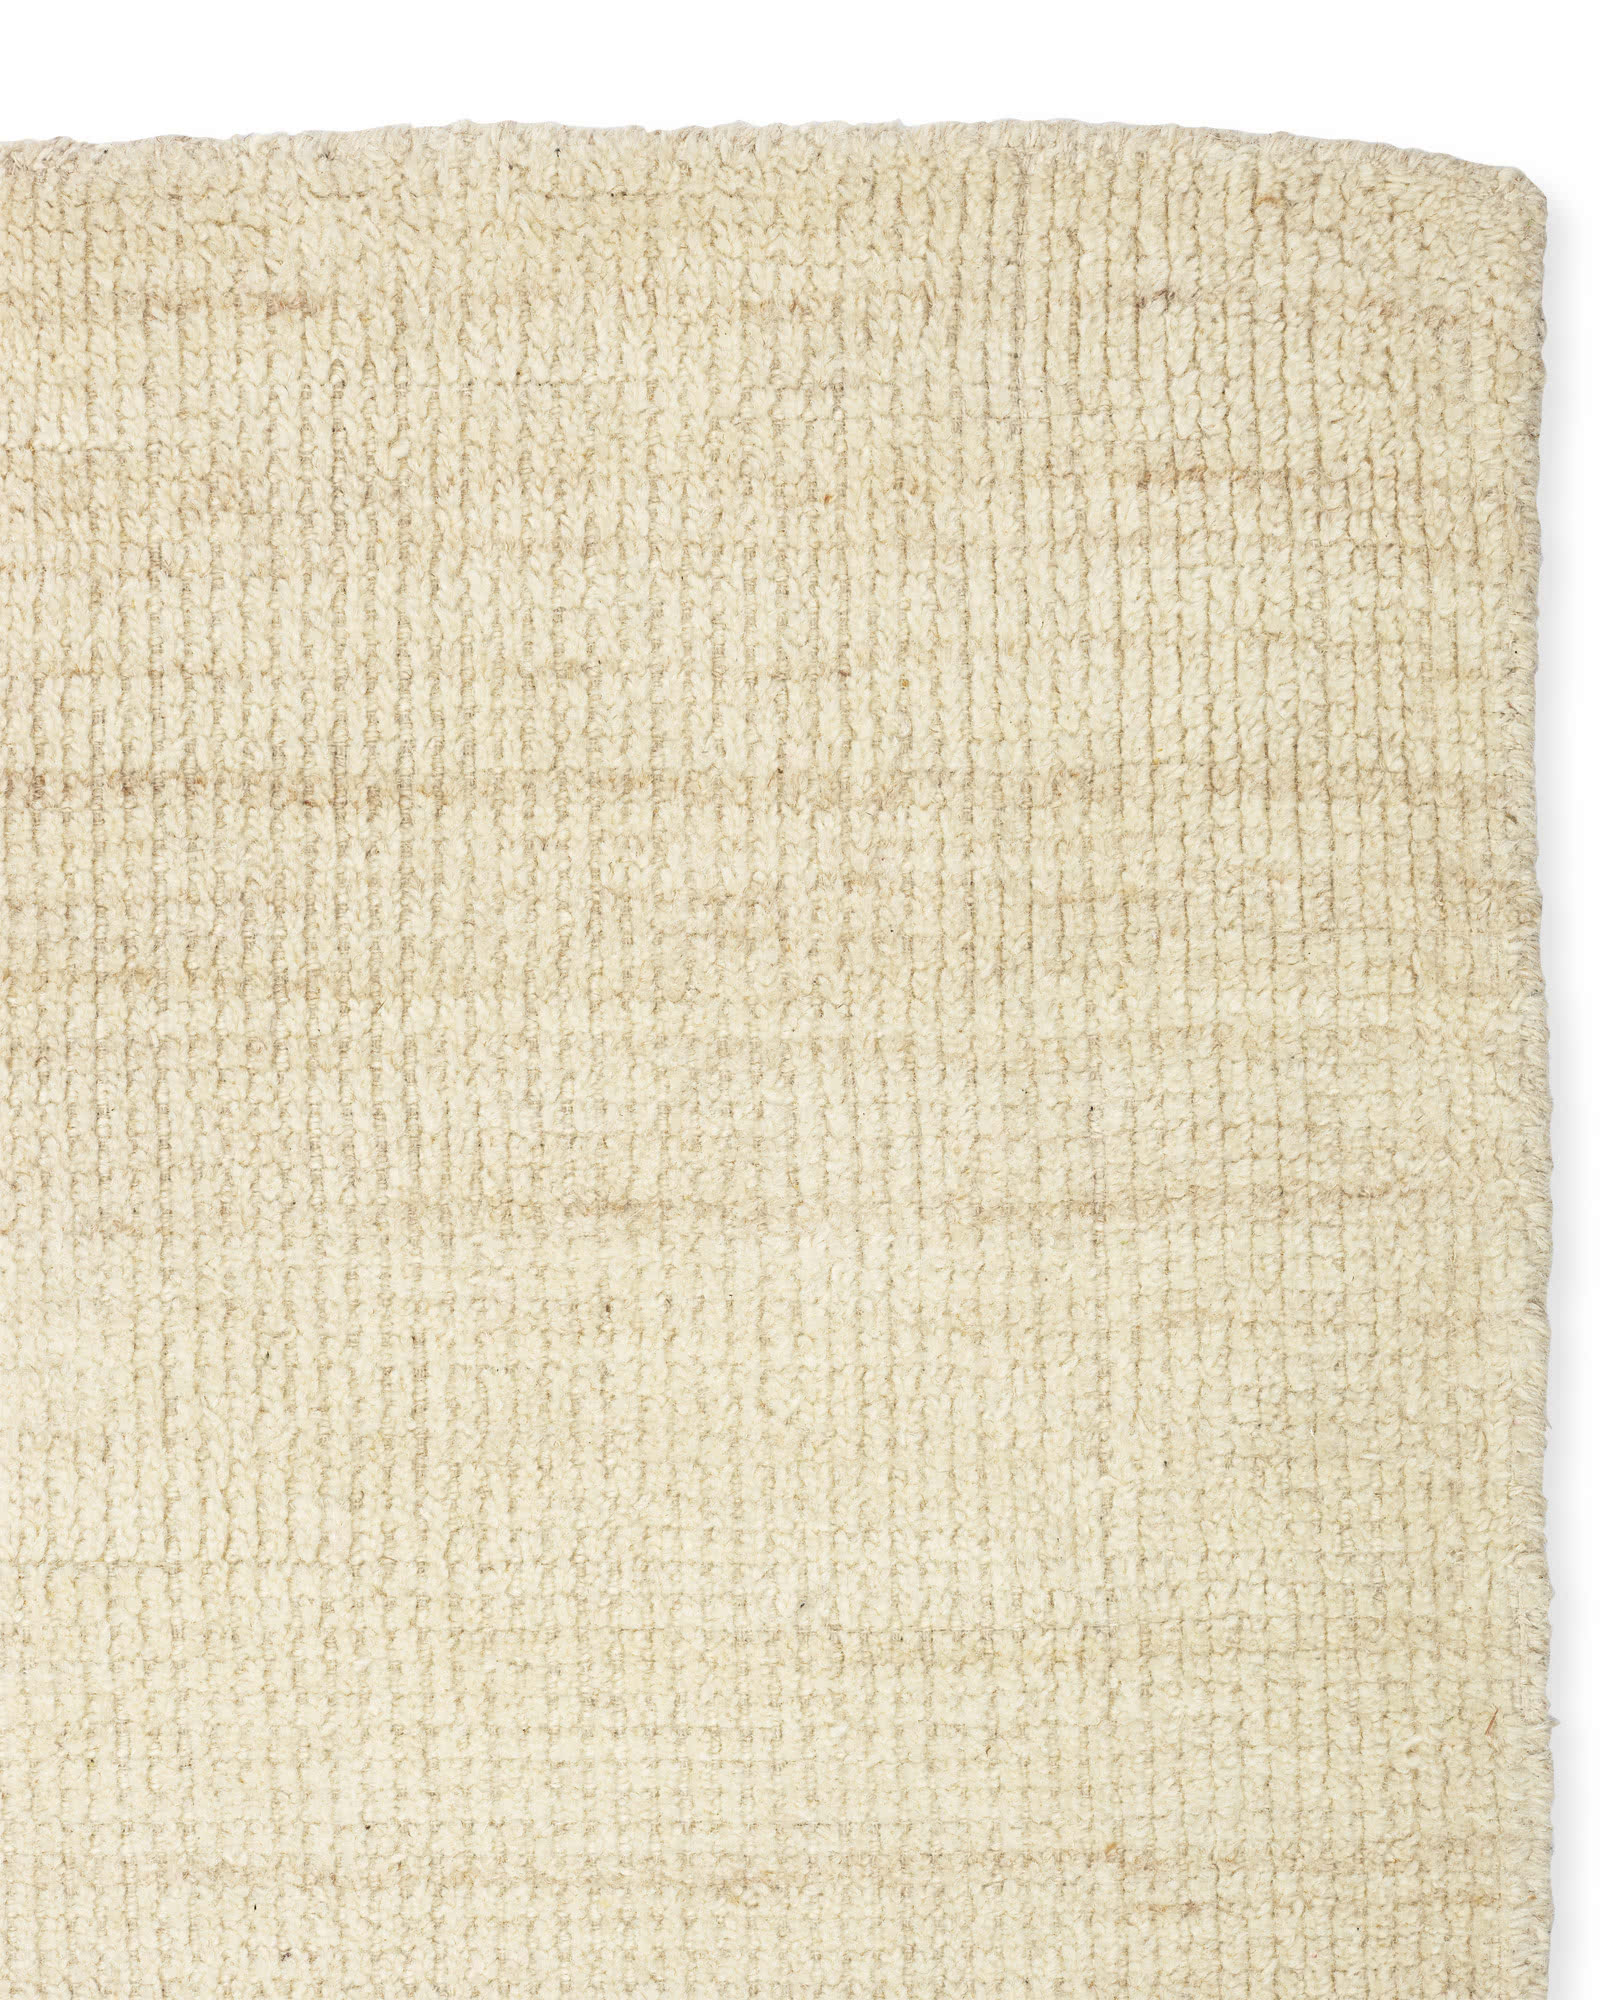 Casco Rug Swatch, Natural